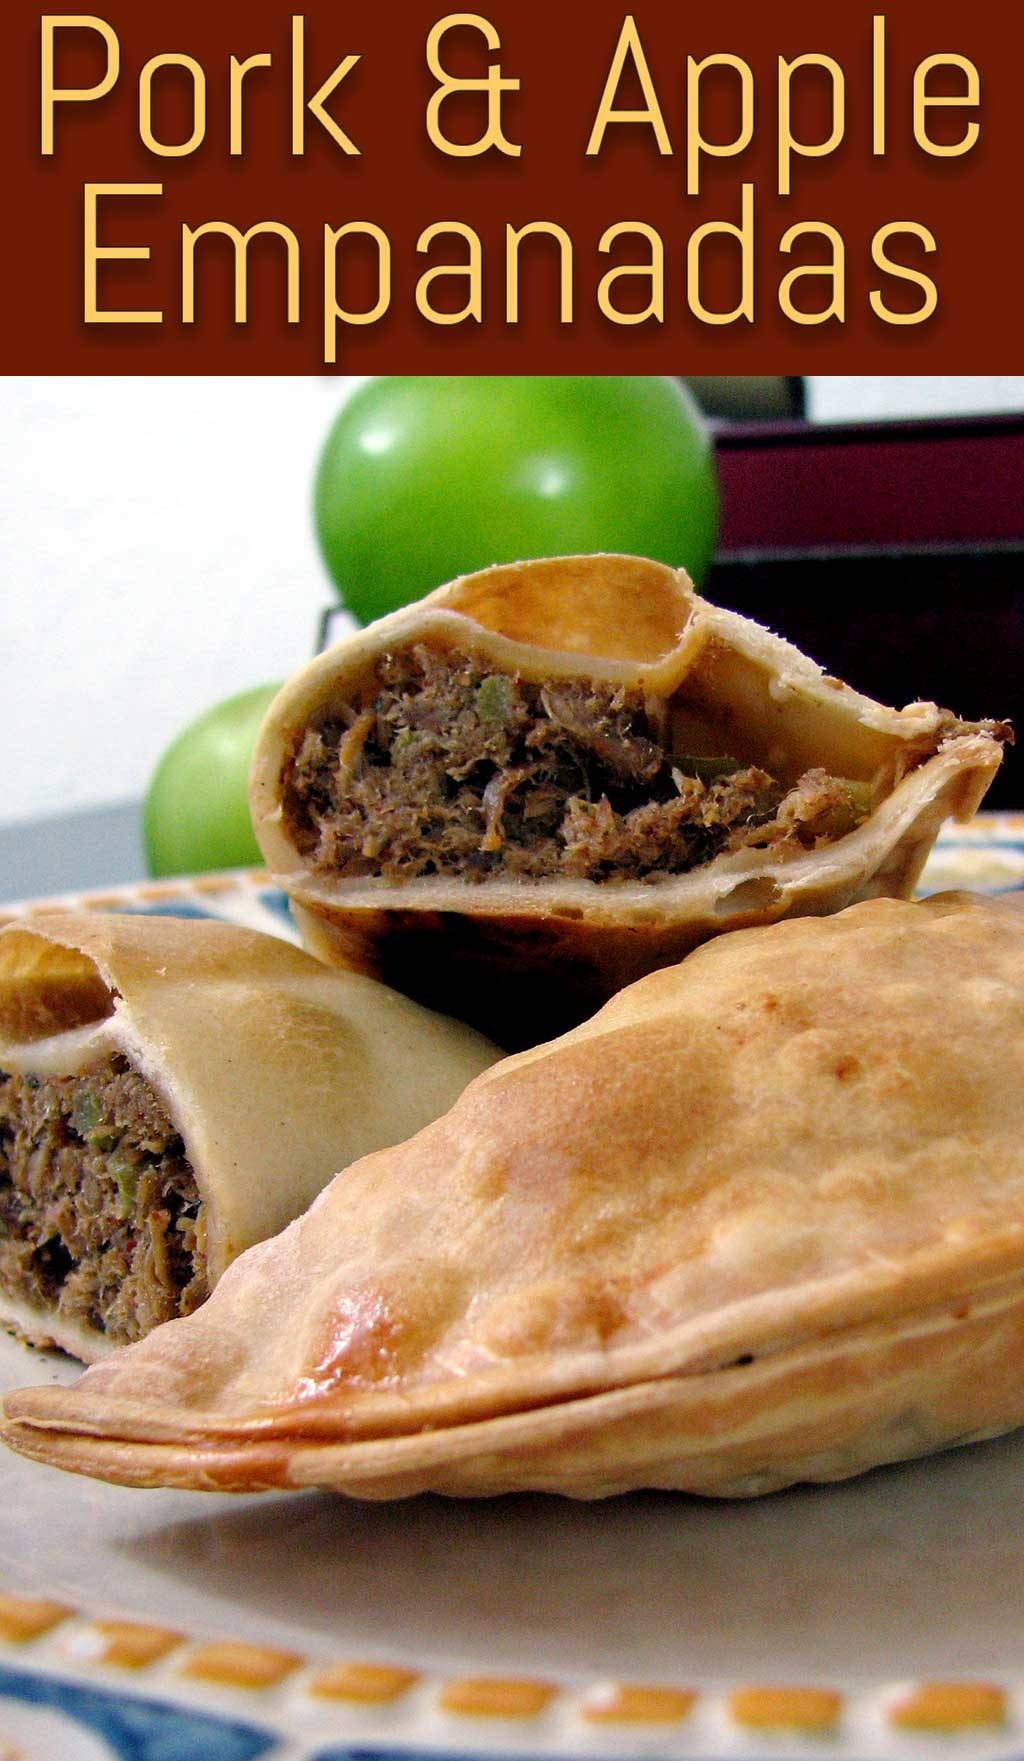 Pork & Apple Empanadas, A twist on a classic empanada recipe